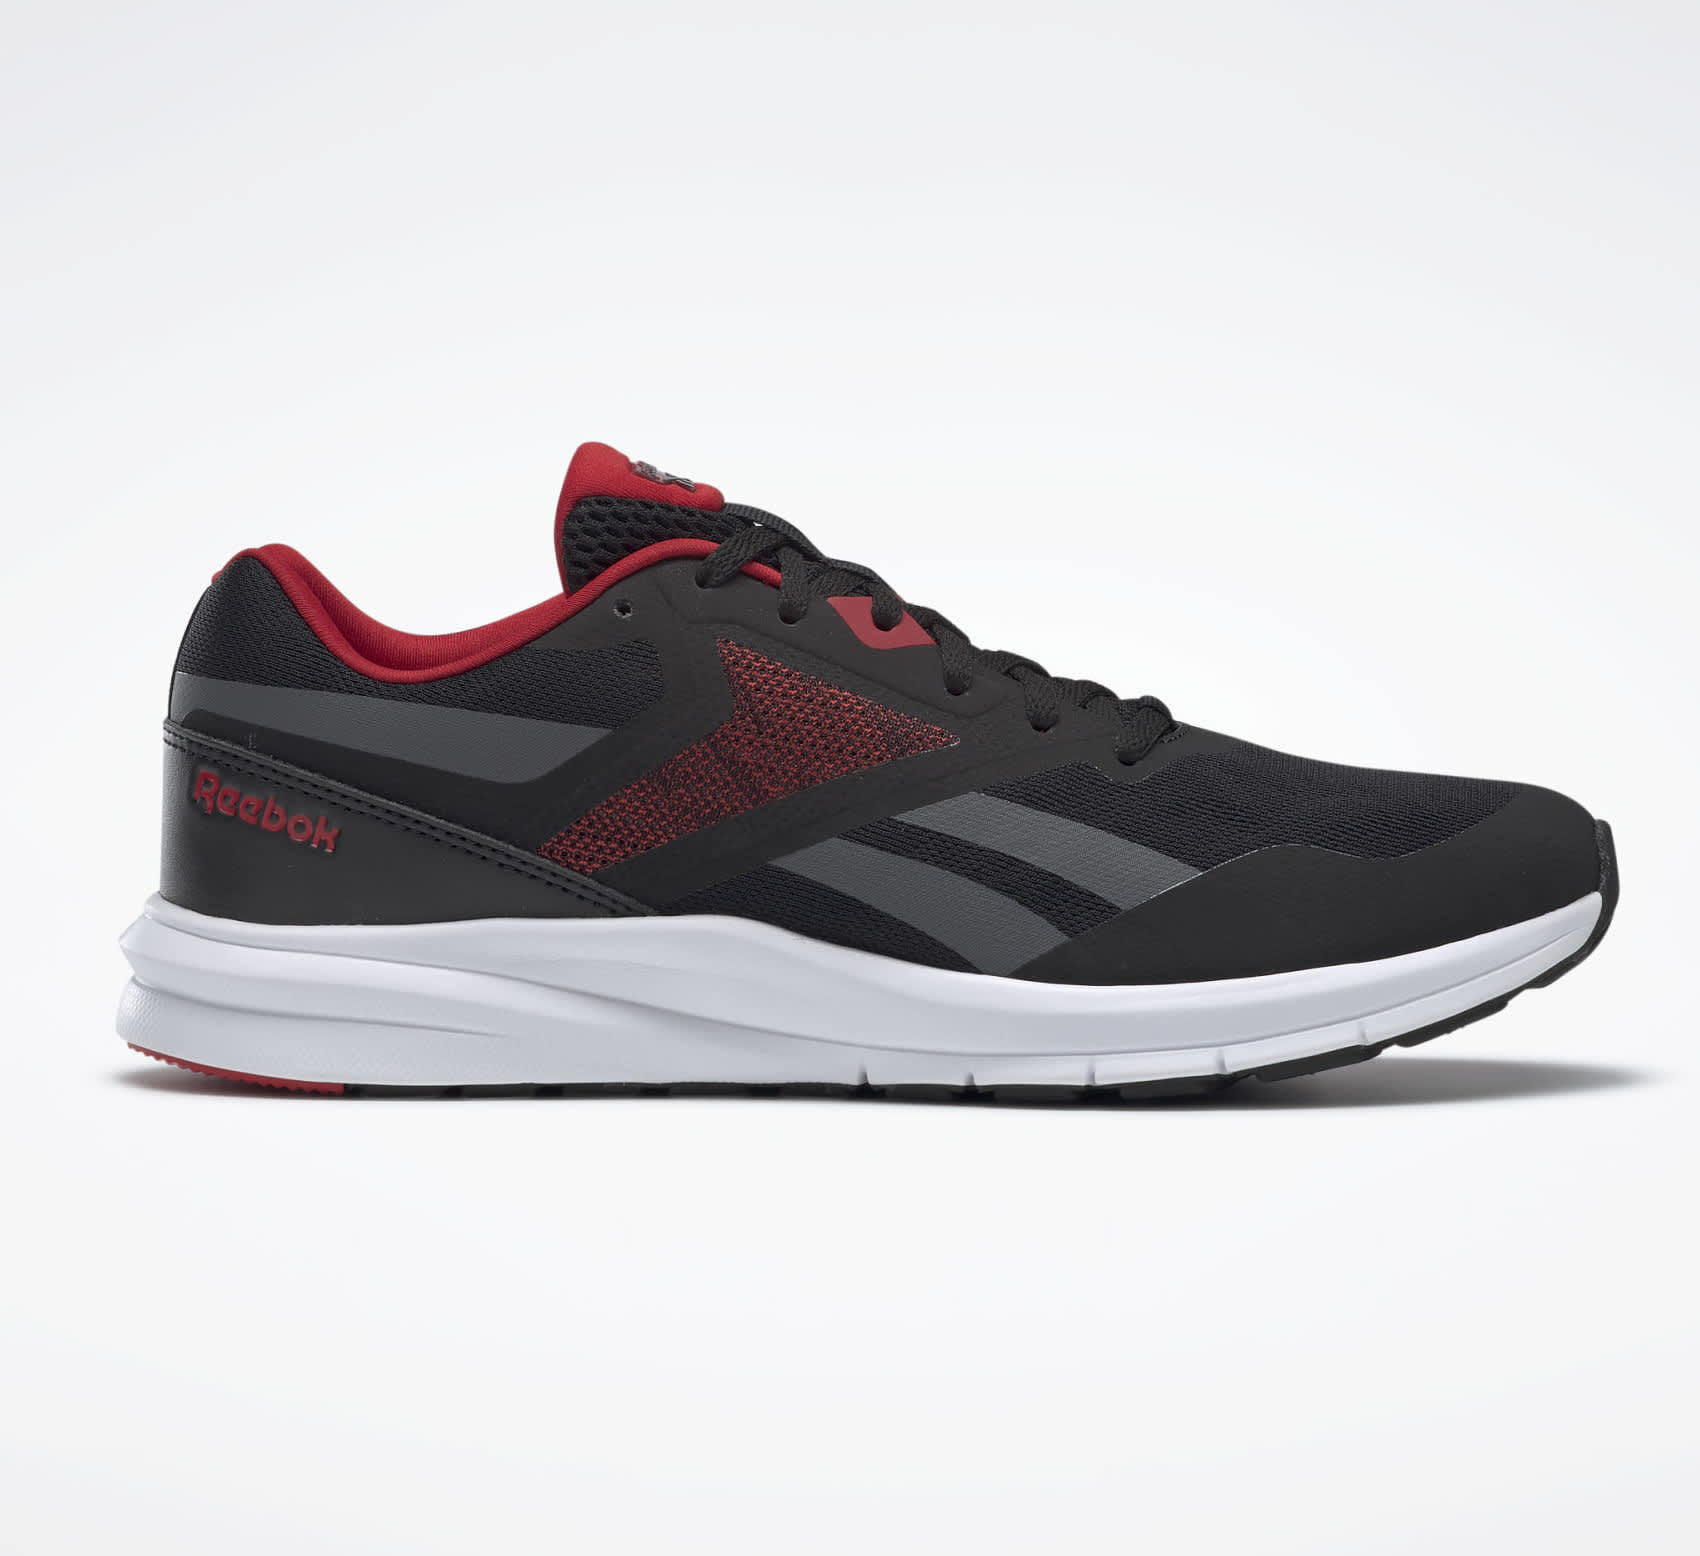 Reebok Men's Runner 4 Running Shoes